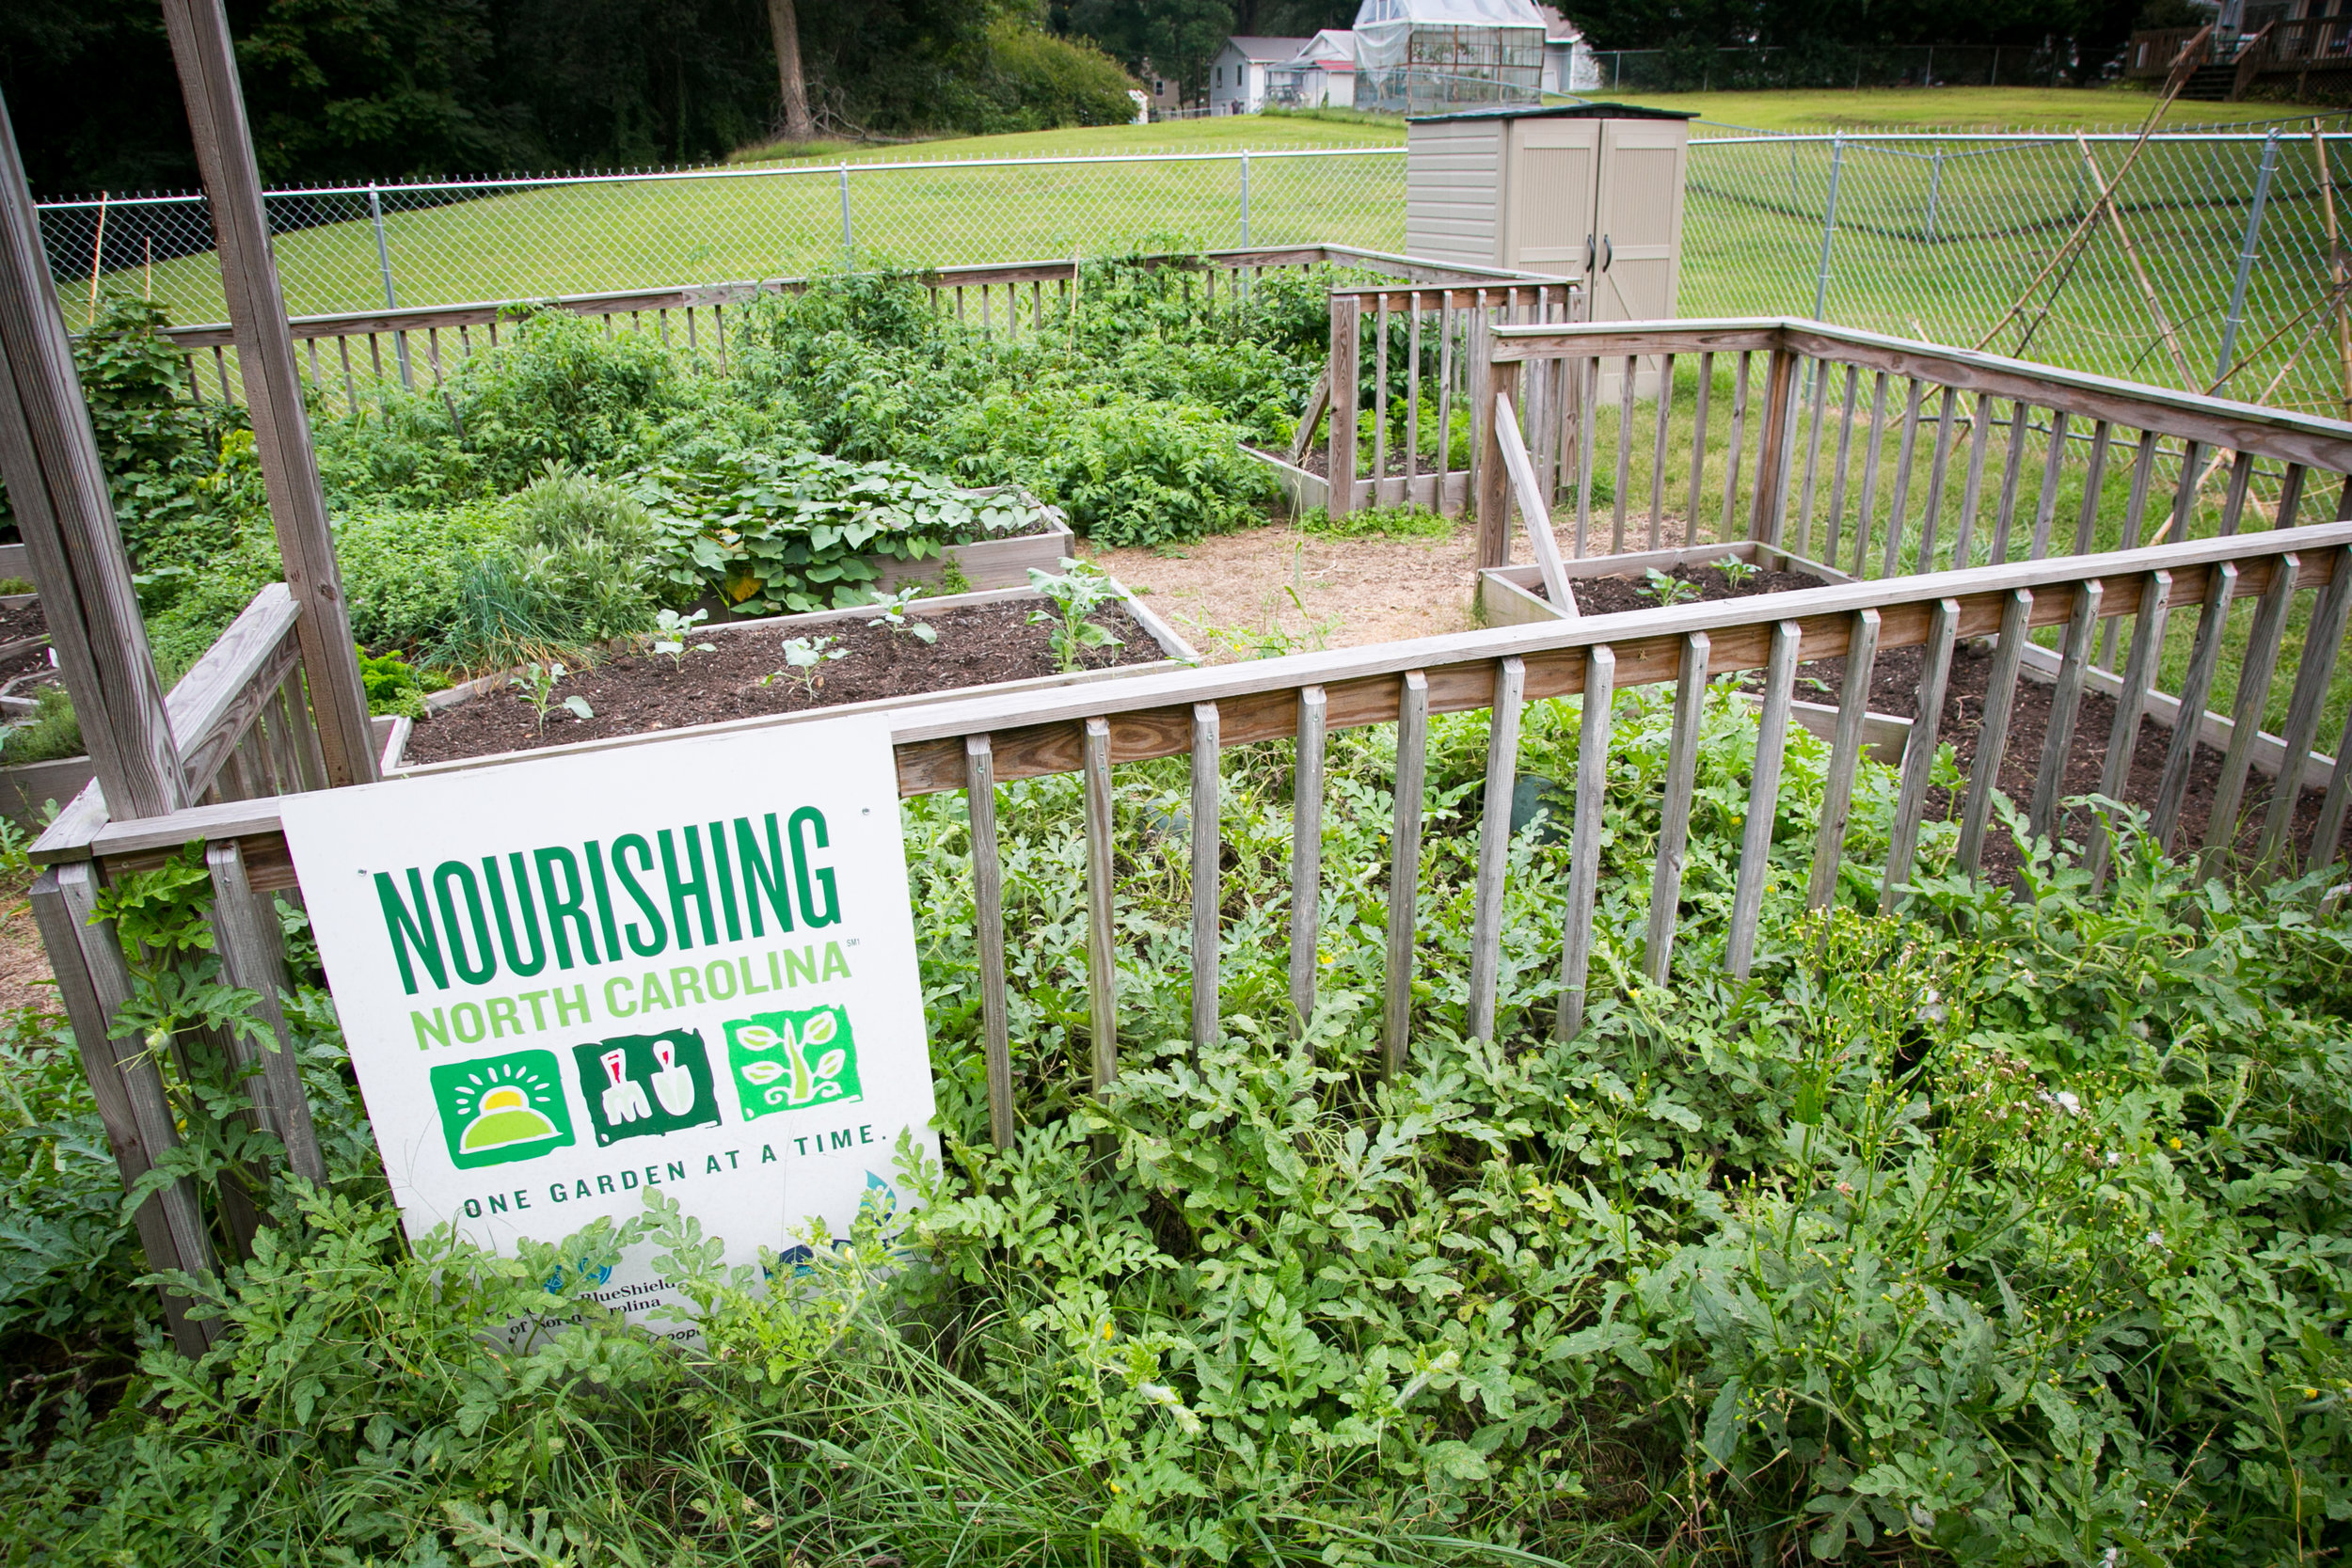 Thomasville Parks & Recreation run community garden with Thomasville City Schools.